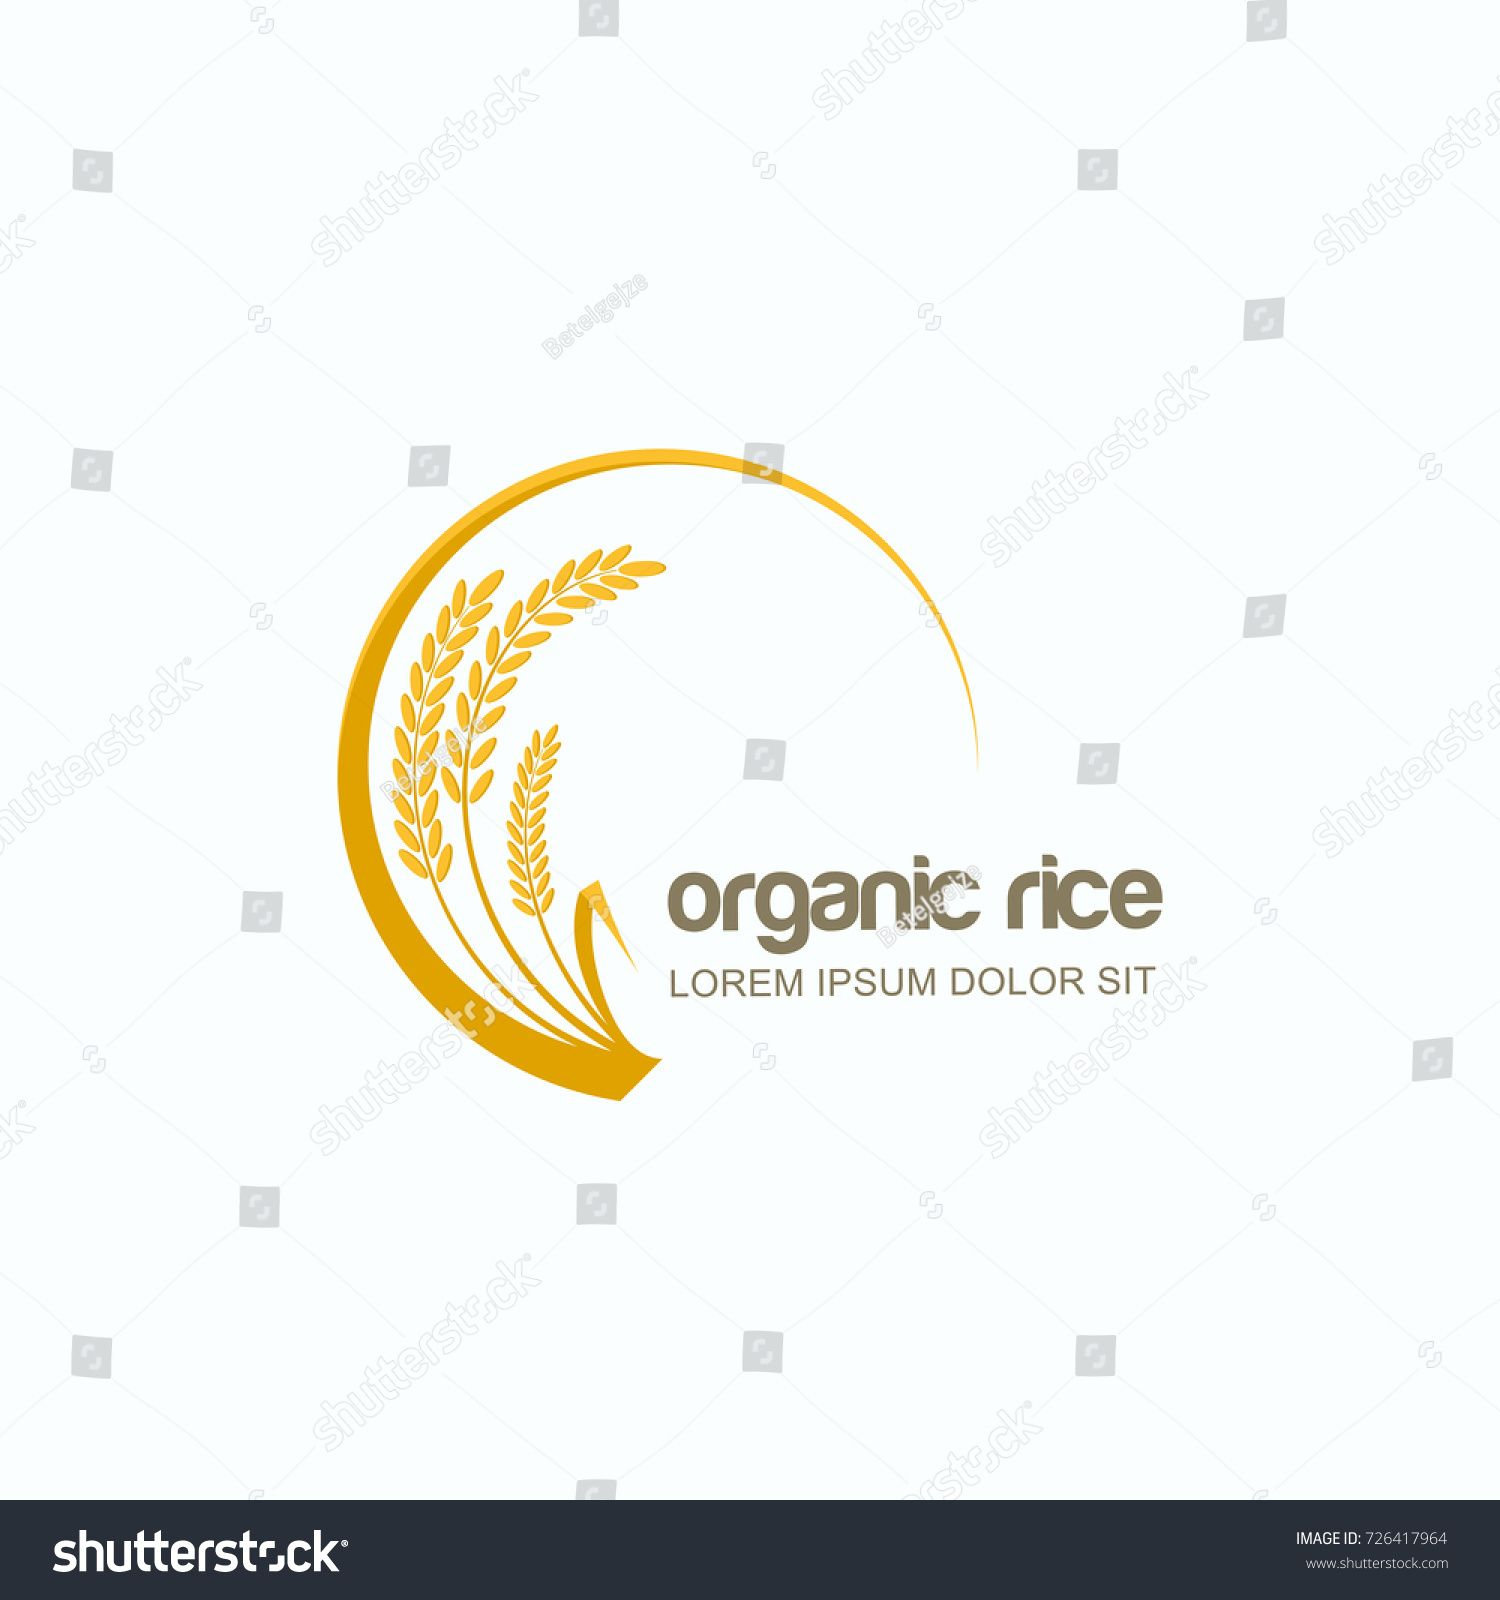 medium resolution of vector logo label or package circle emblem with yellow rice wheat rye grains design template for asian agriculture organic cereal products